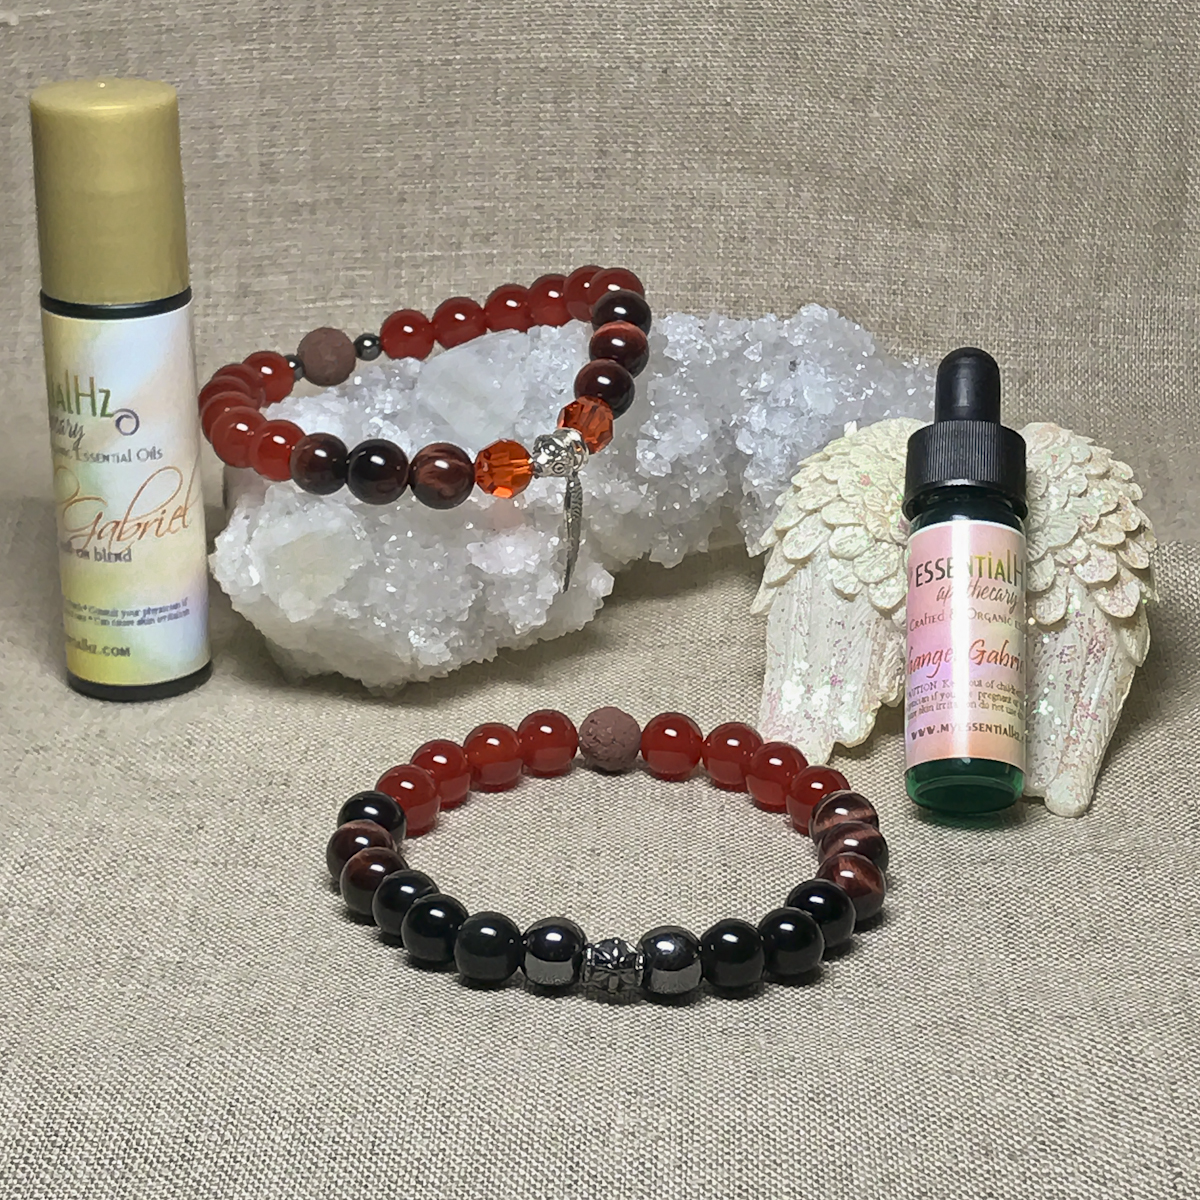 Archangel Gabriel Gemstone Crystal Aromatherapy Bracelet & Essential Oil Set